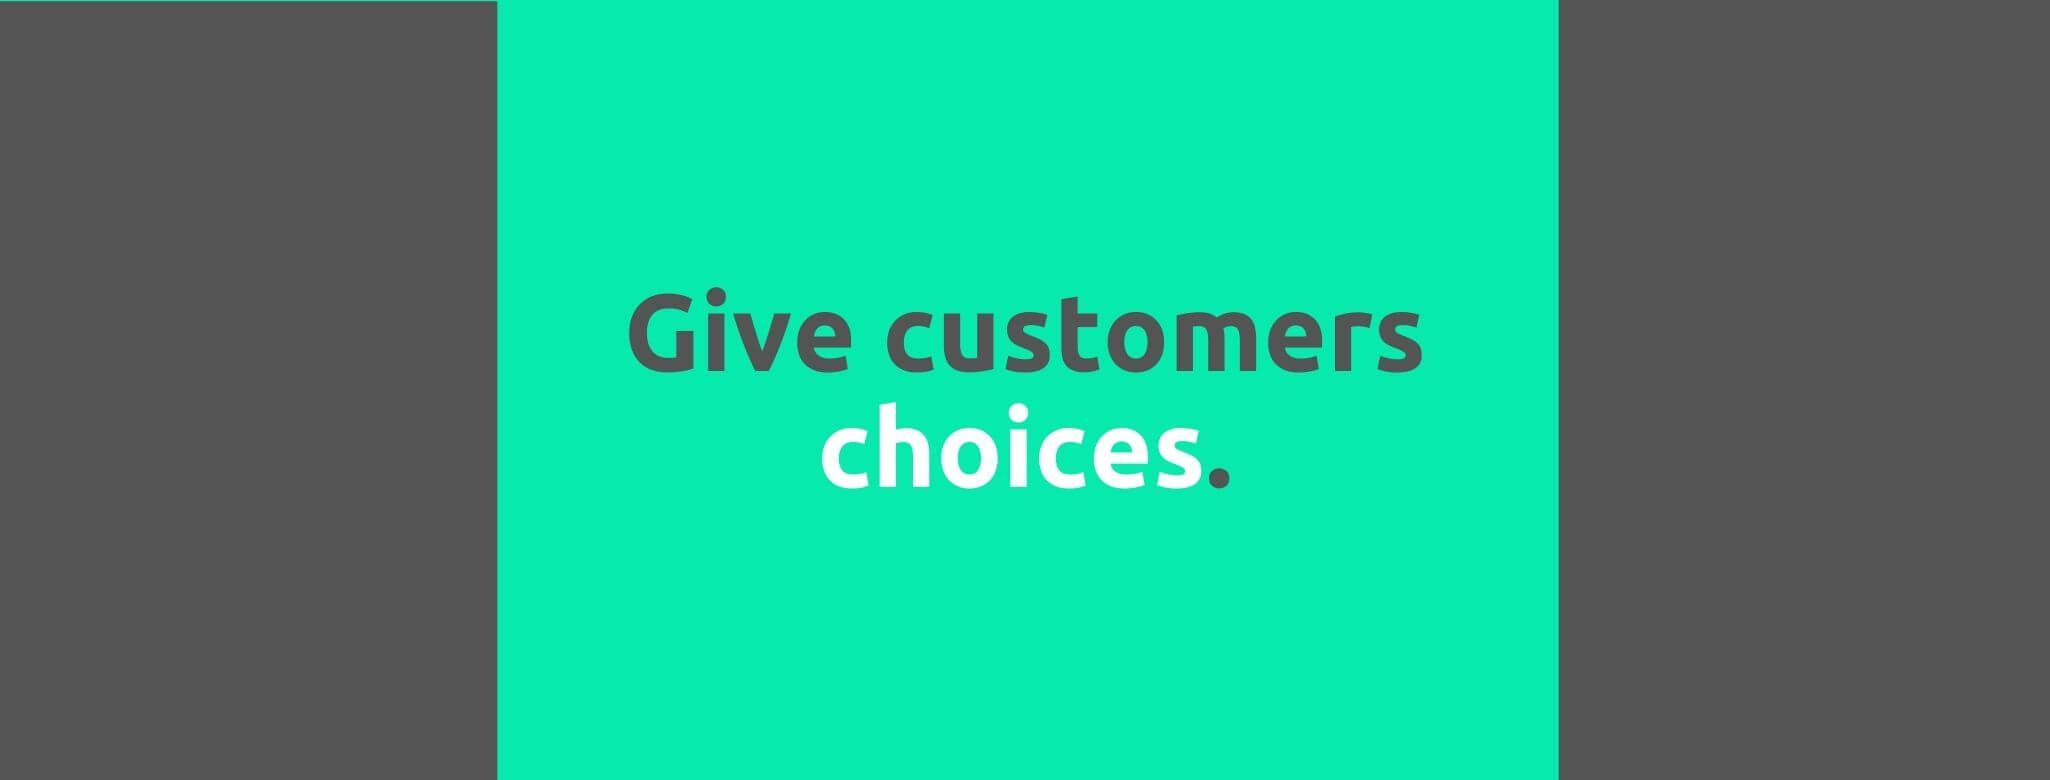 Give customers choices - Customer Expectations - Replyco Helpdesk Software for eCommerce